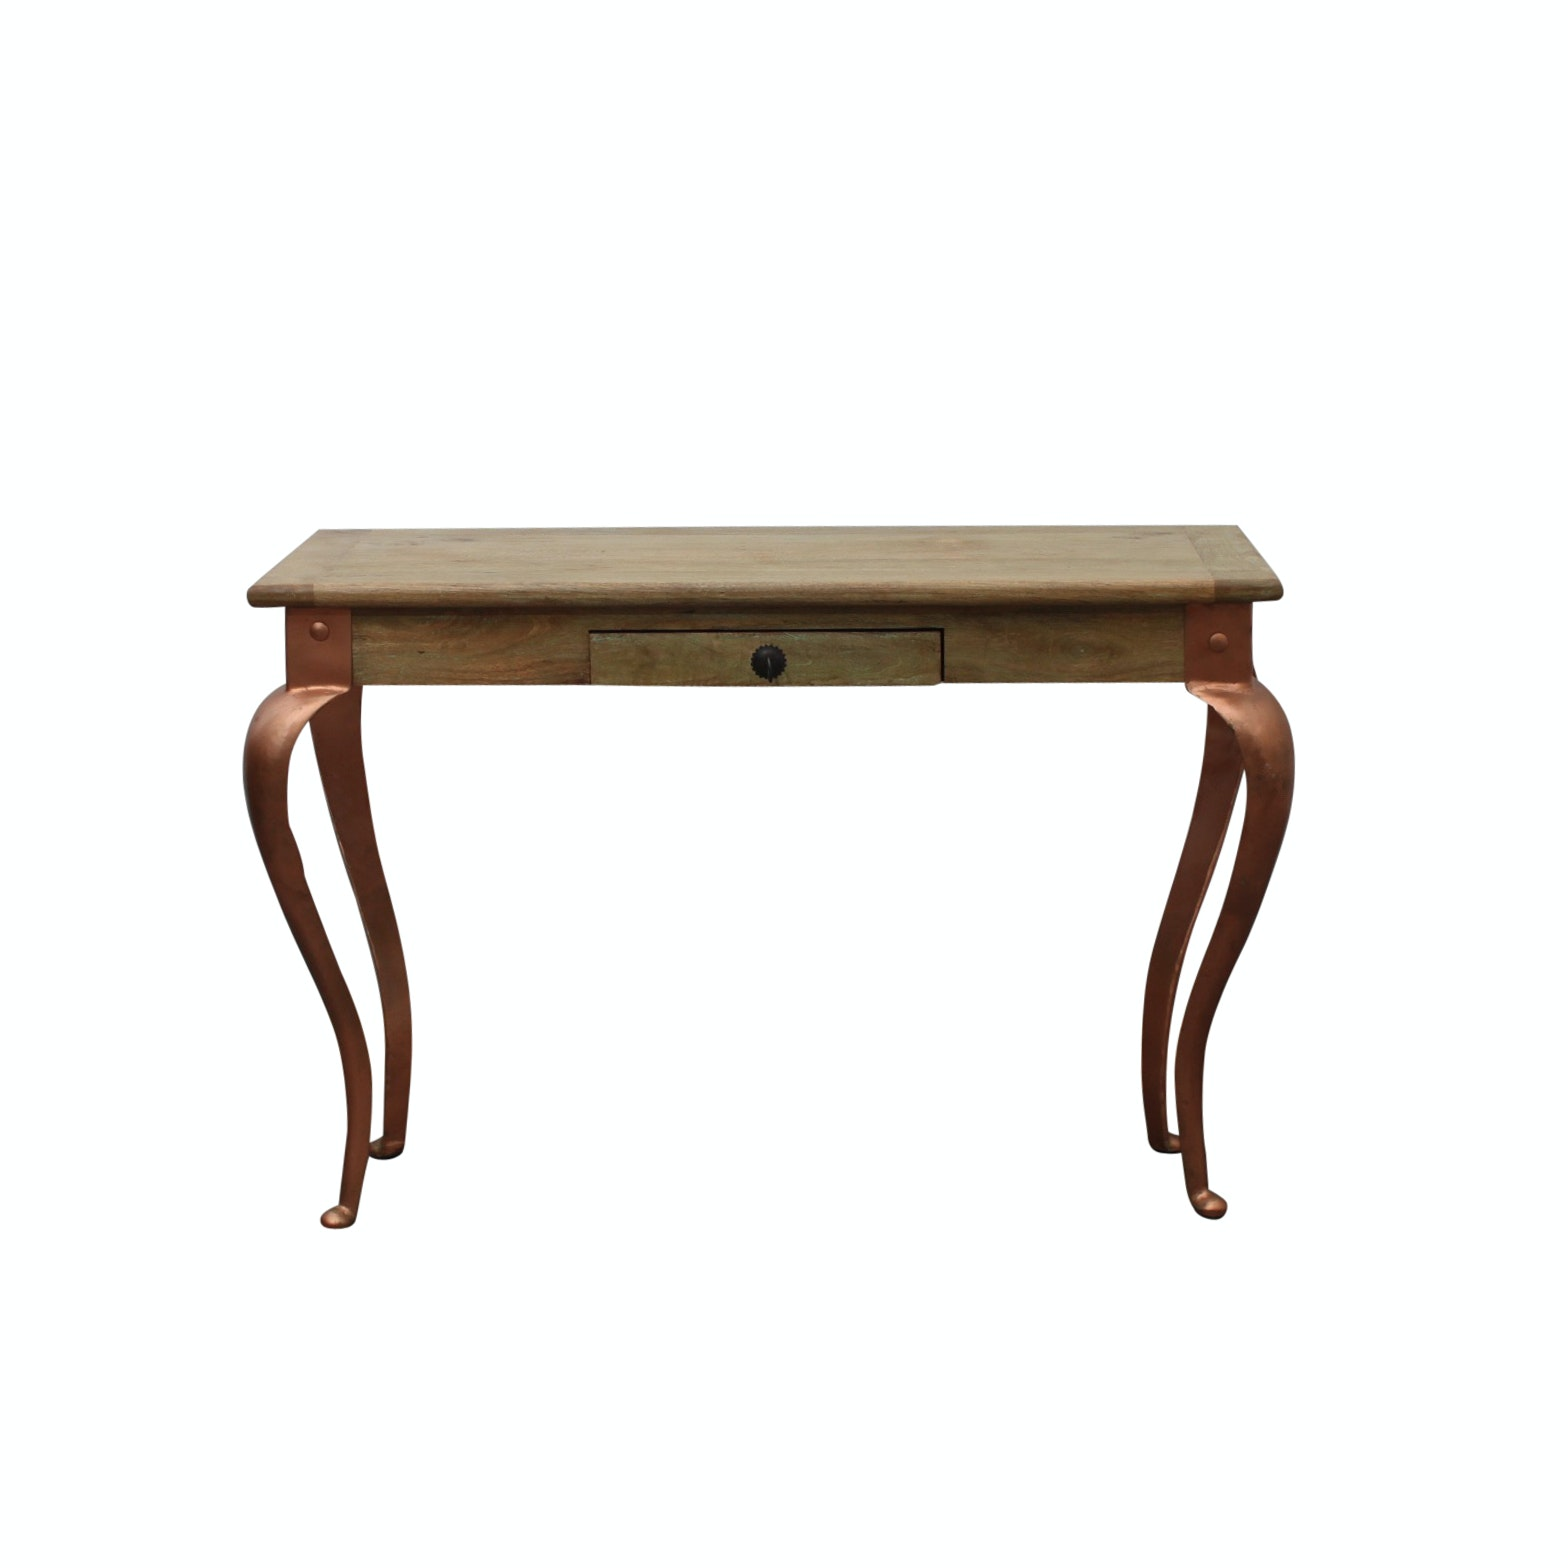 Rustic Console Table with Copper Tone Legs